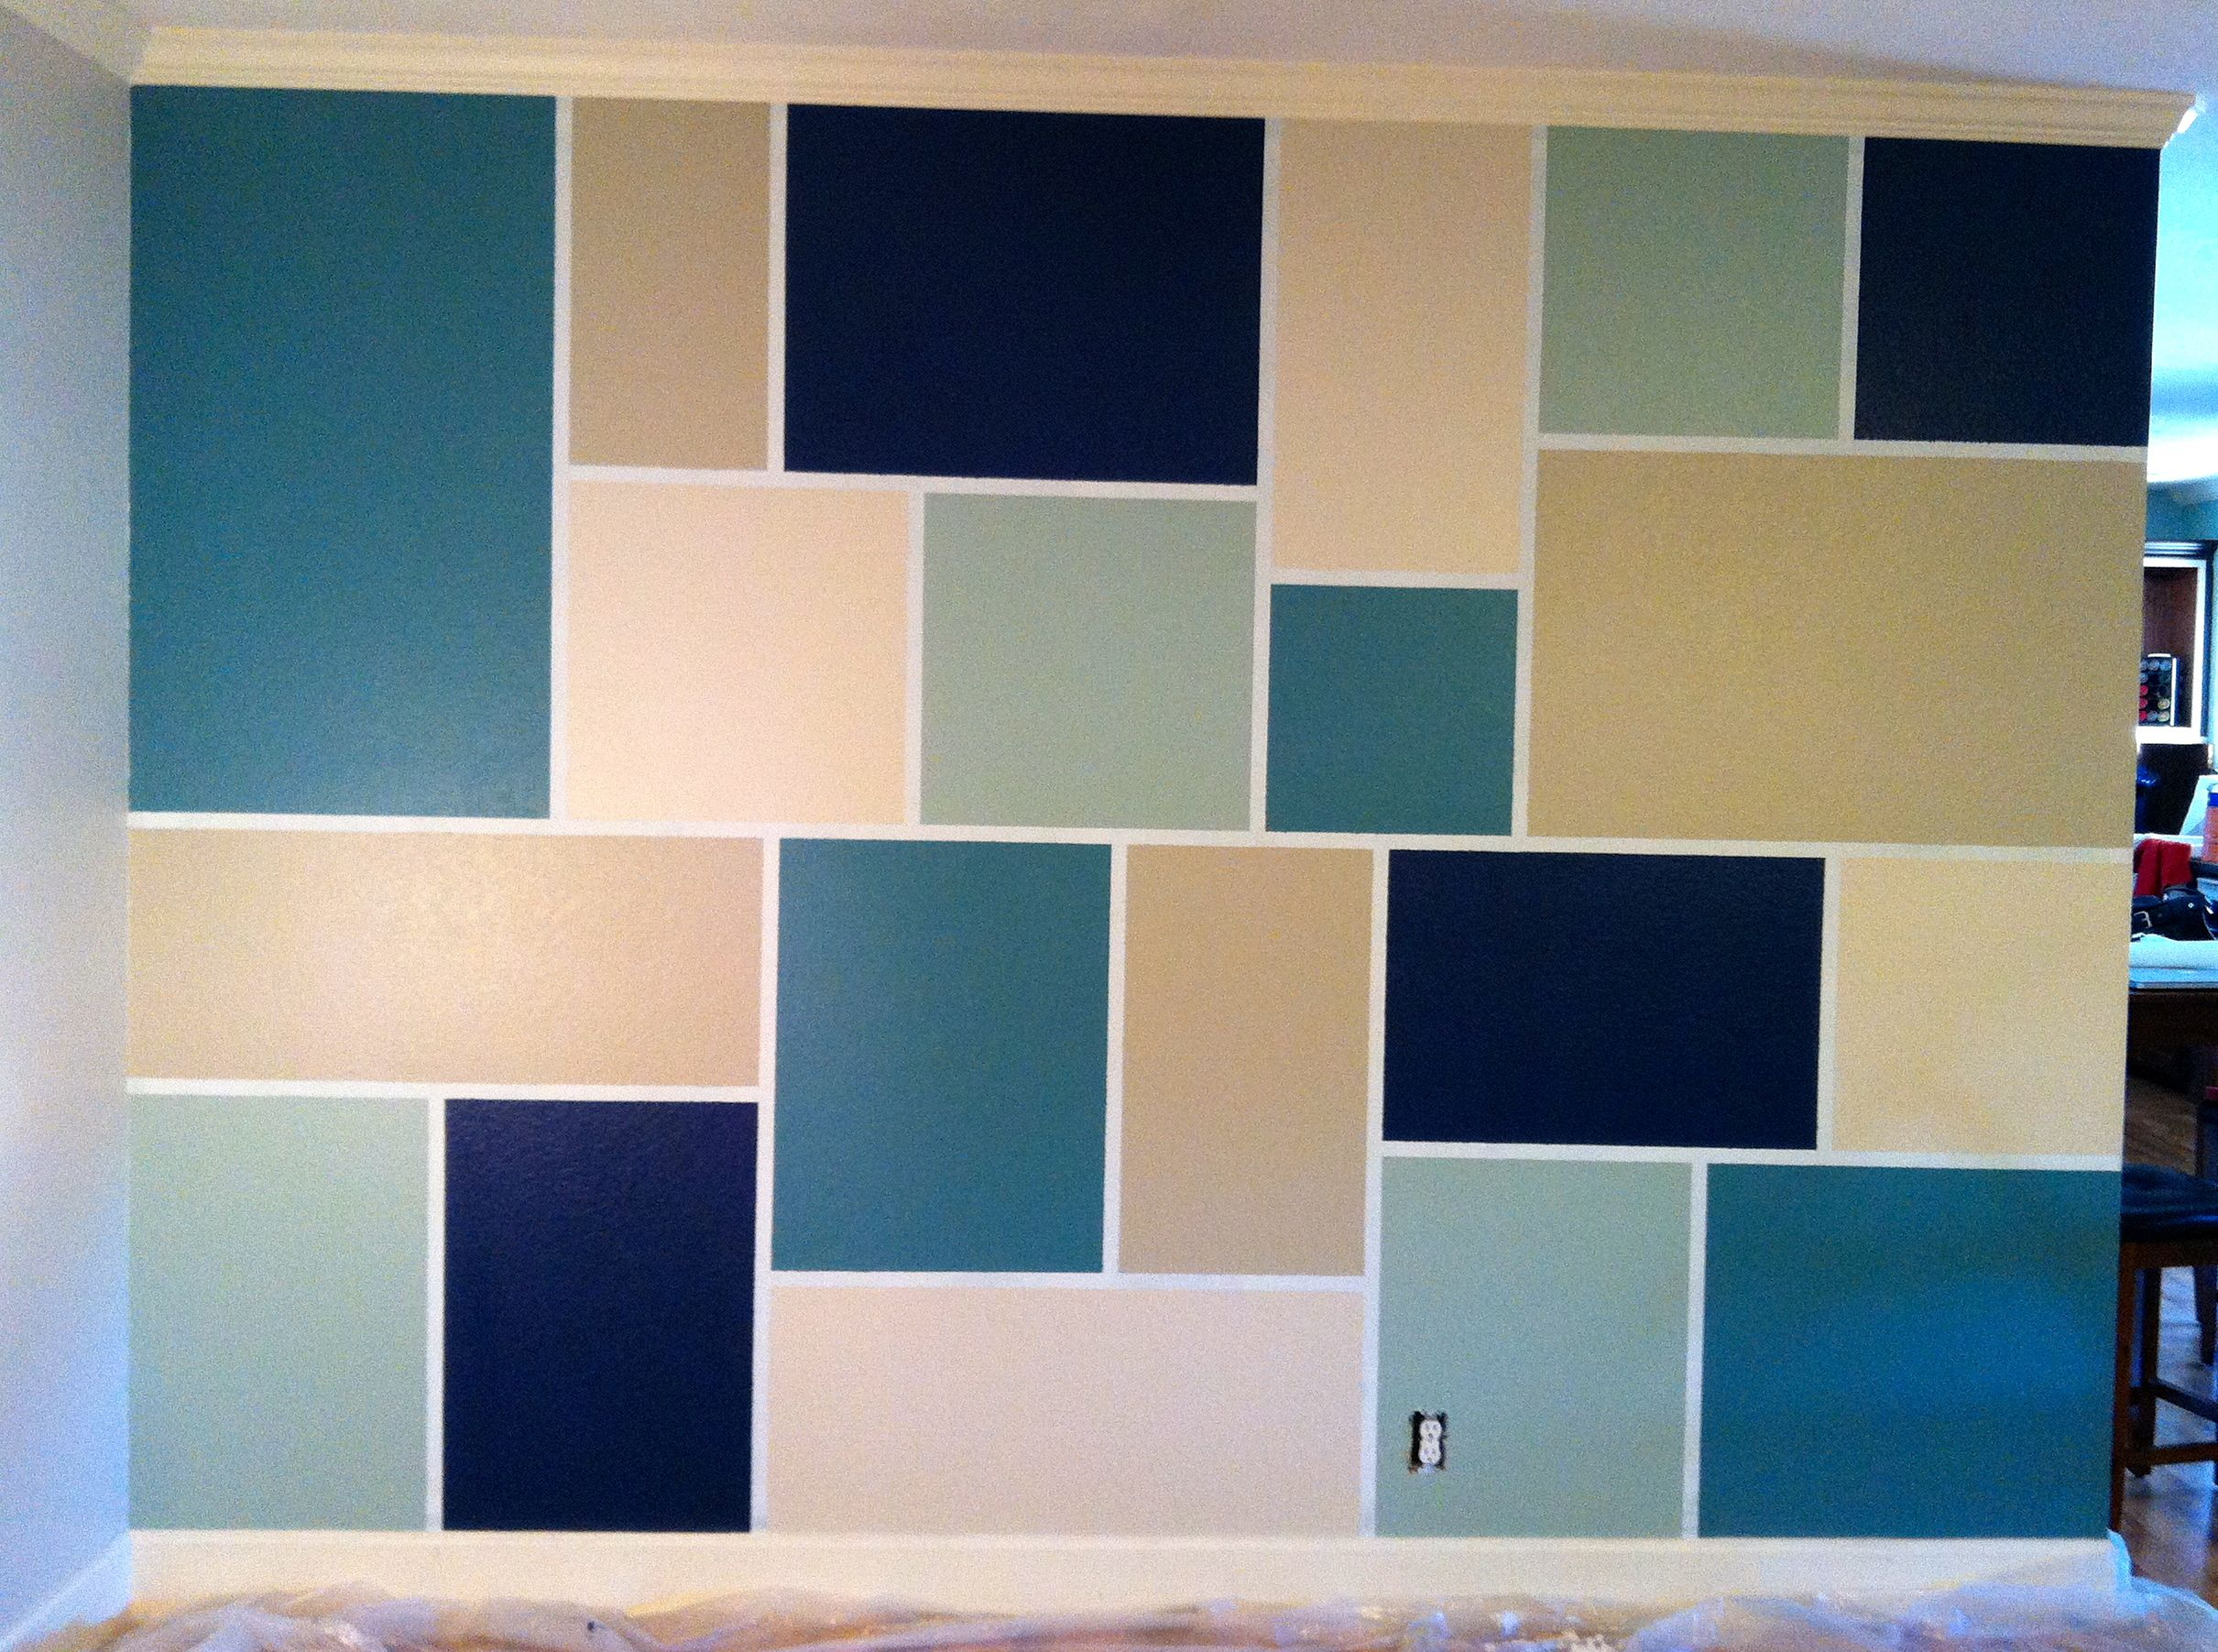 Feature Wall   U003e Step 1: Tape Out Design   Step 2: Paint